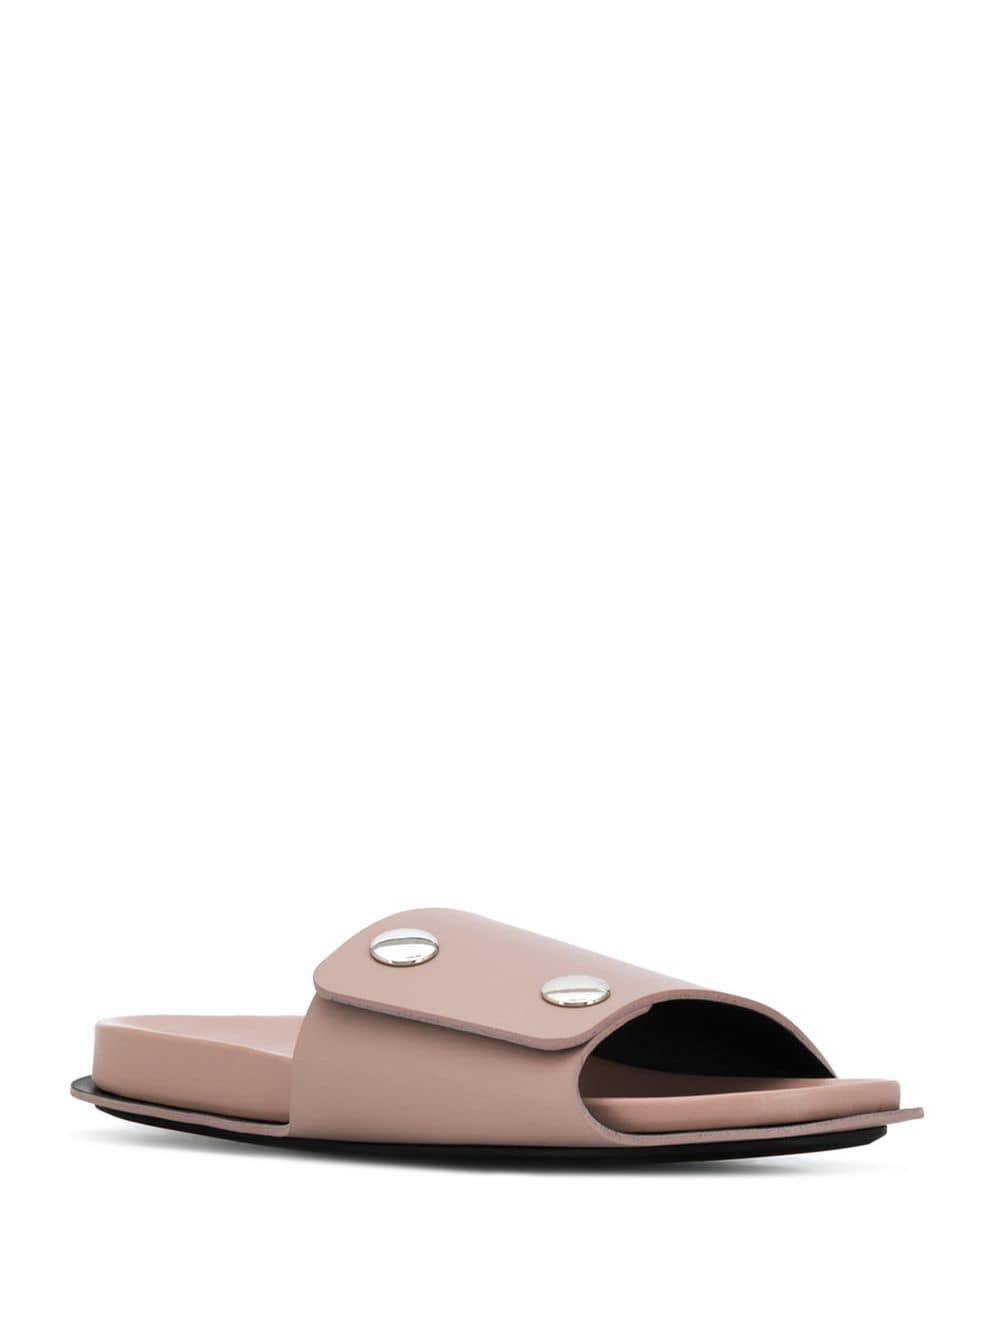 Pink Snap In Marni Detail Lyst Sandals 7yIbvf6Ygm